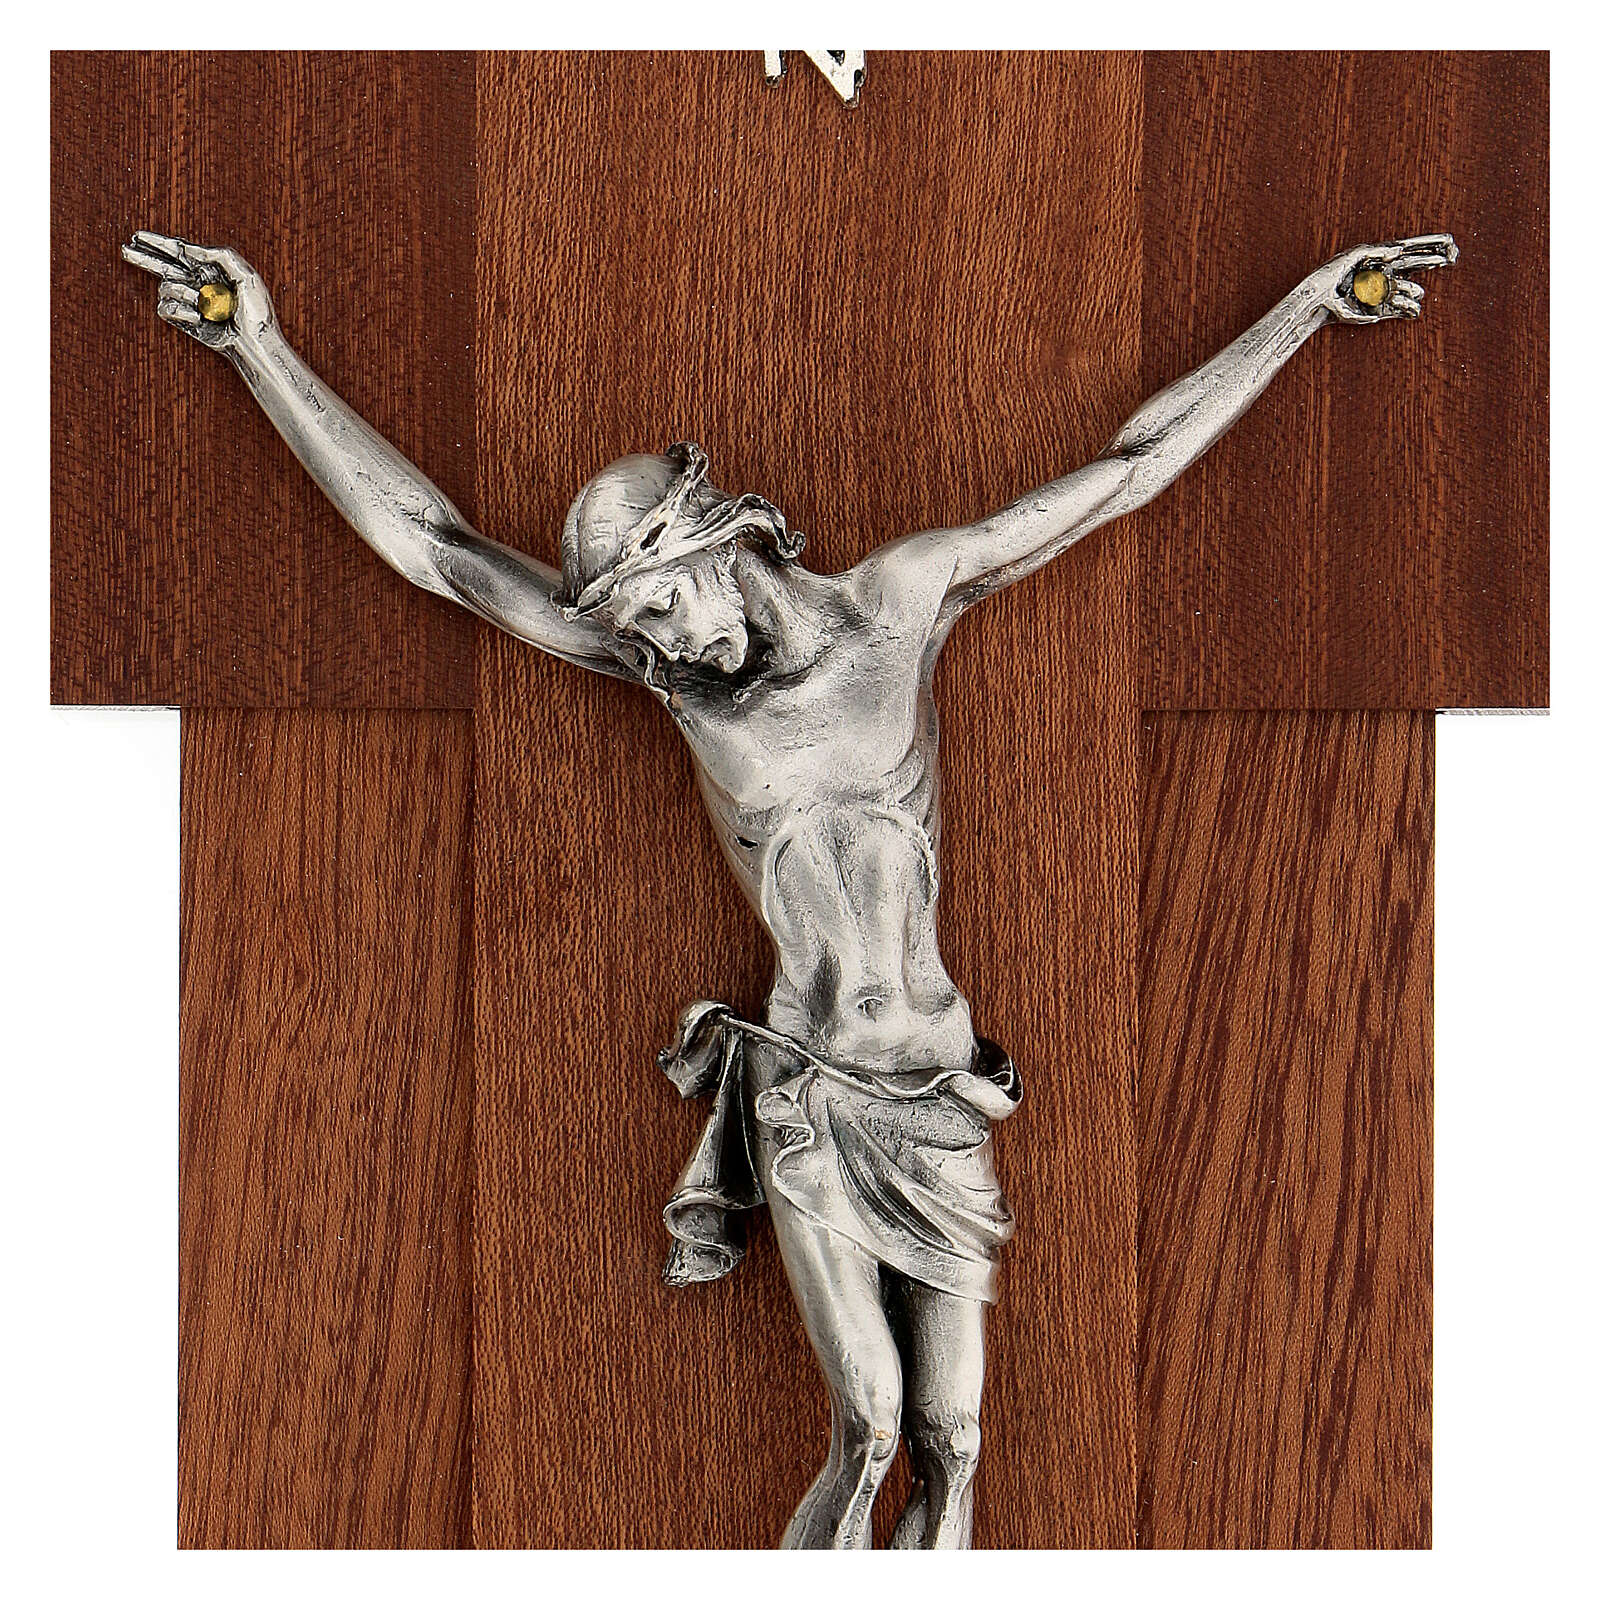 Wooden crucifix with silver metal body of Christ 4